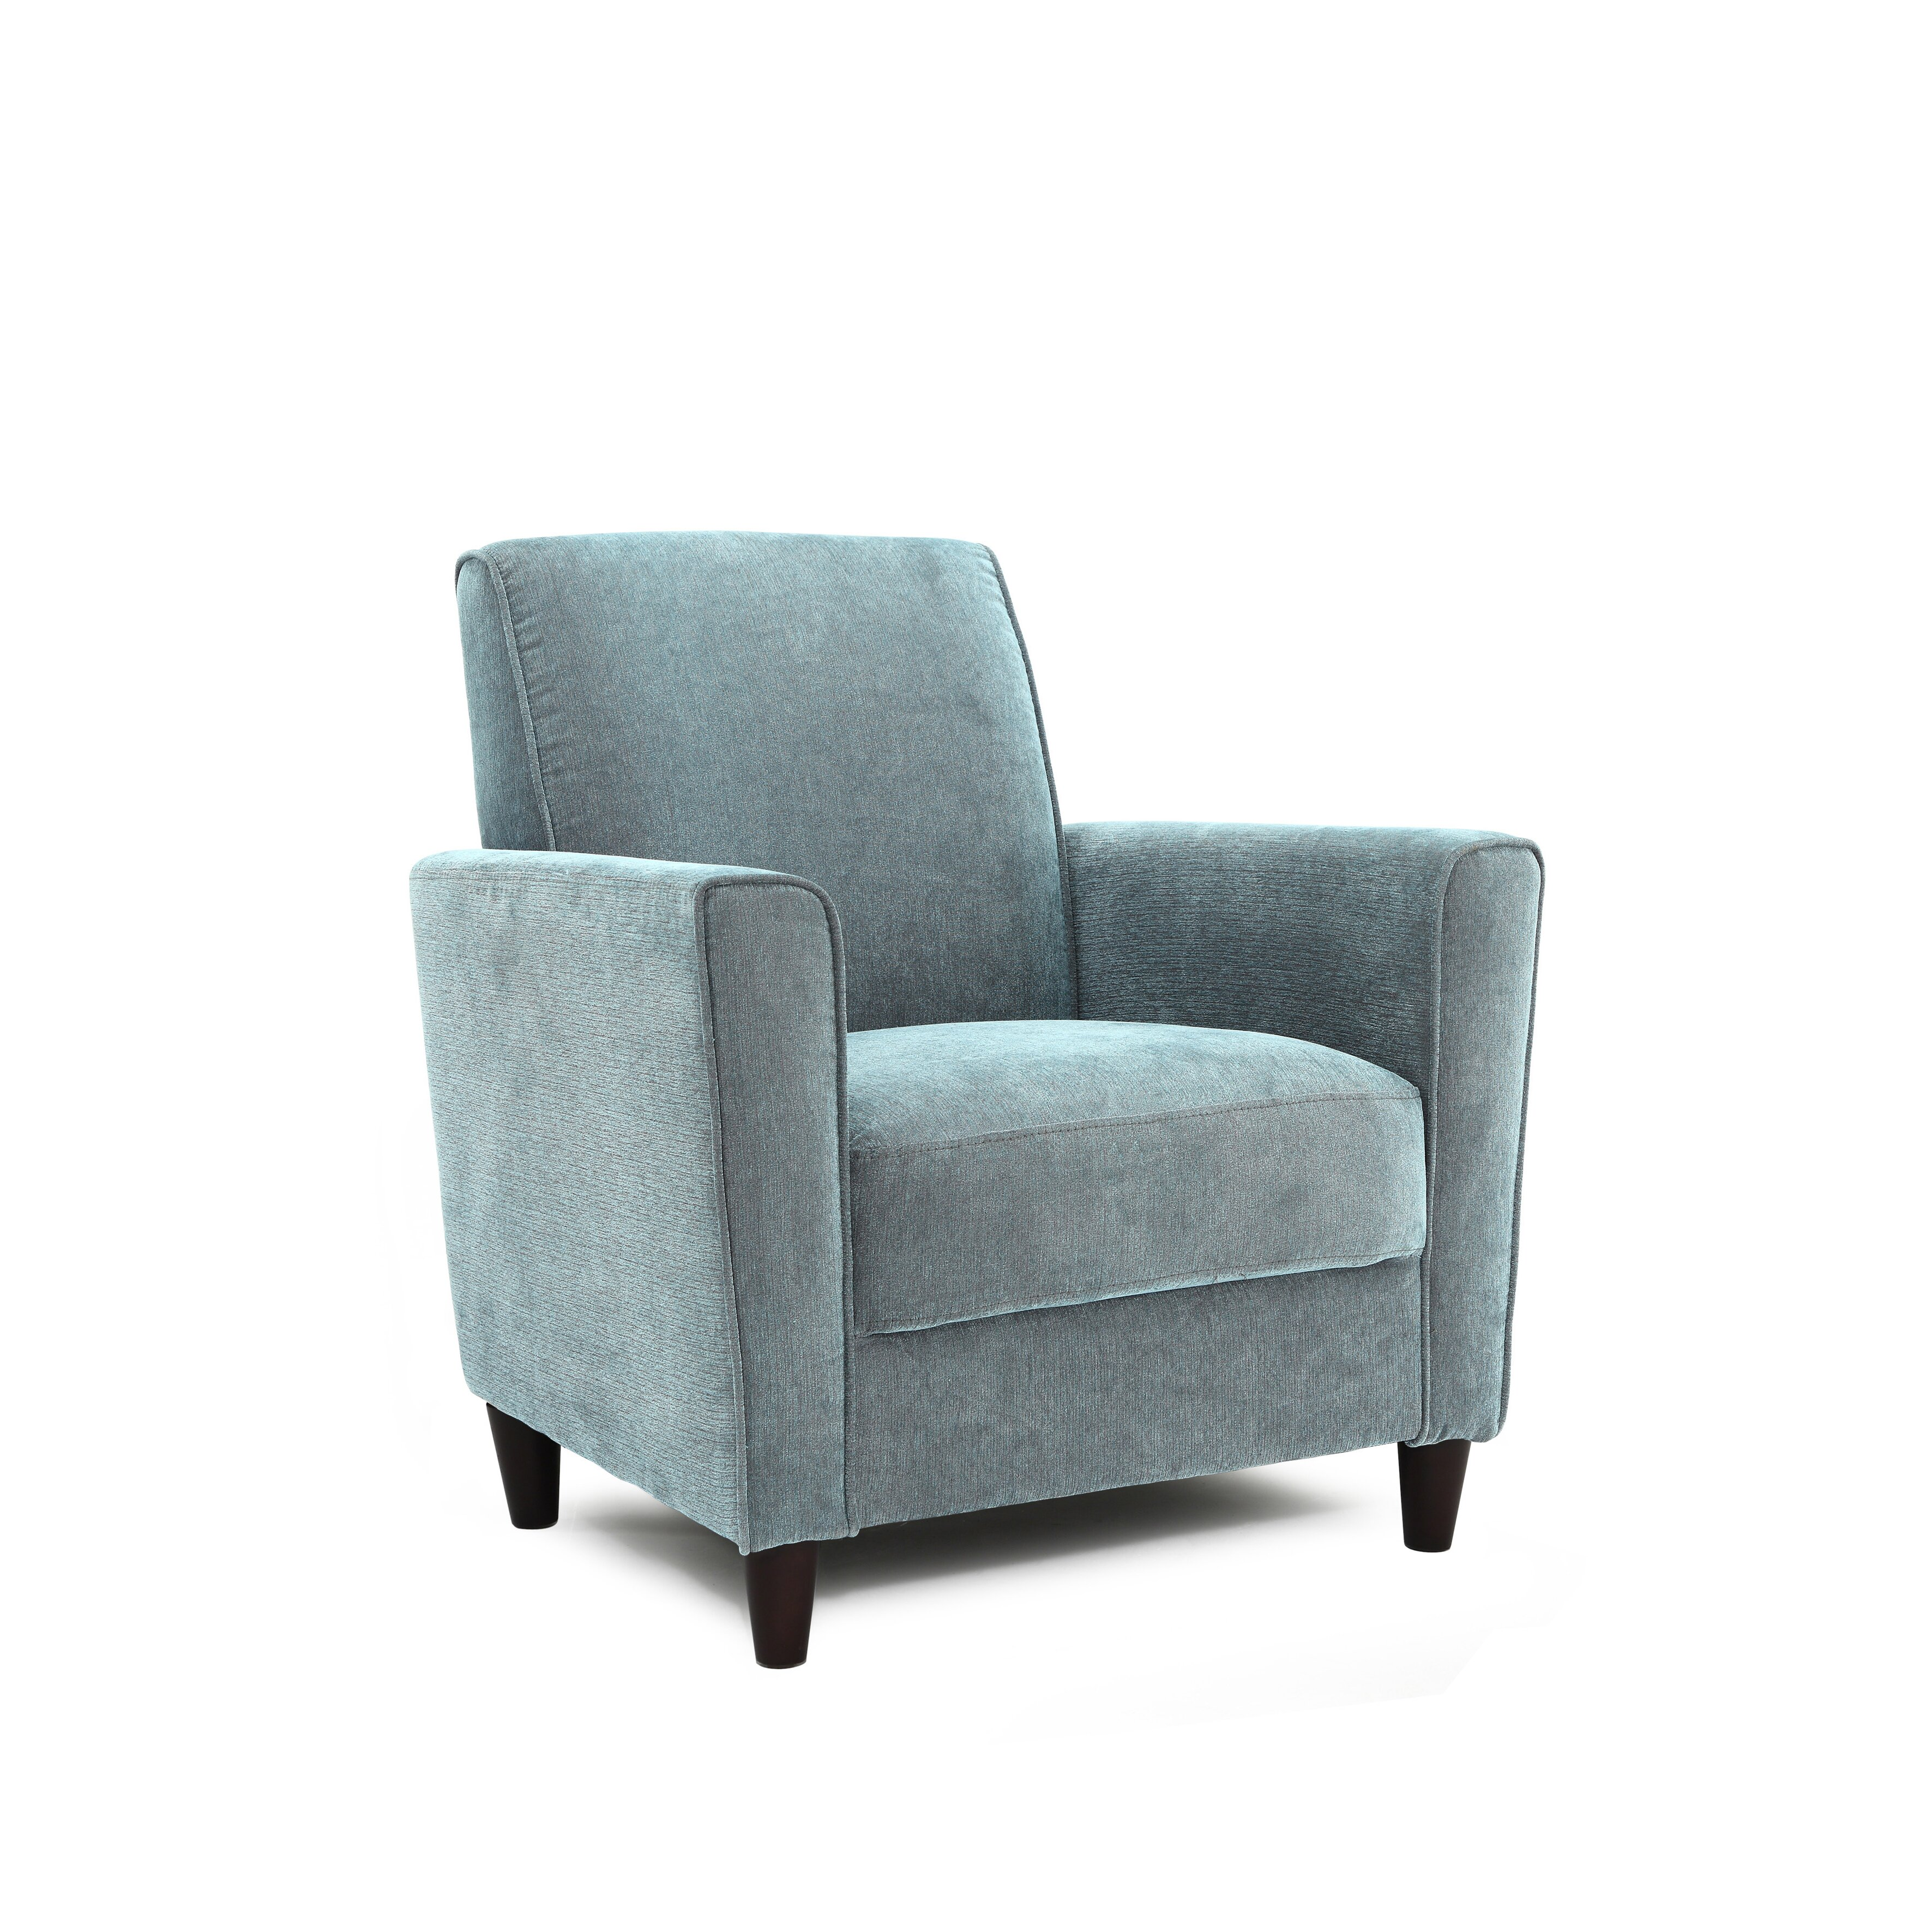 Track arm Accent Chairs You'll Love | Wayfair - Harman Arm Chair